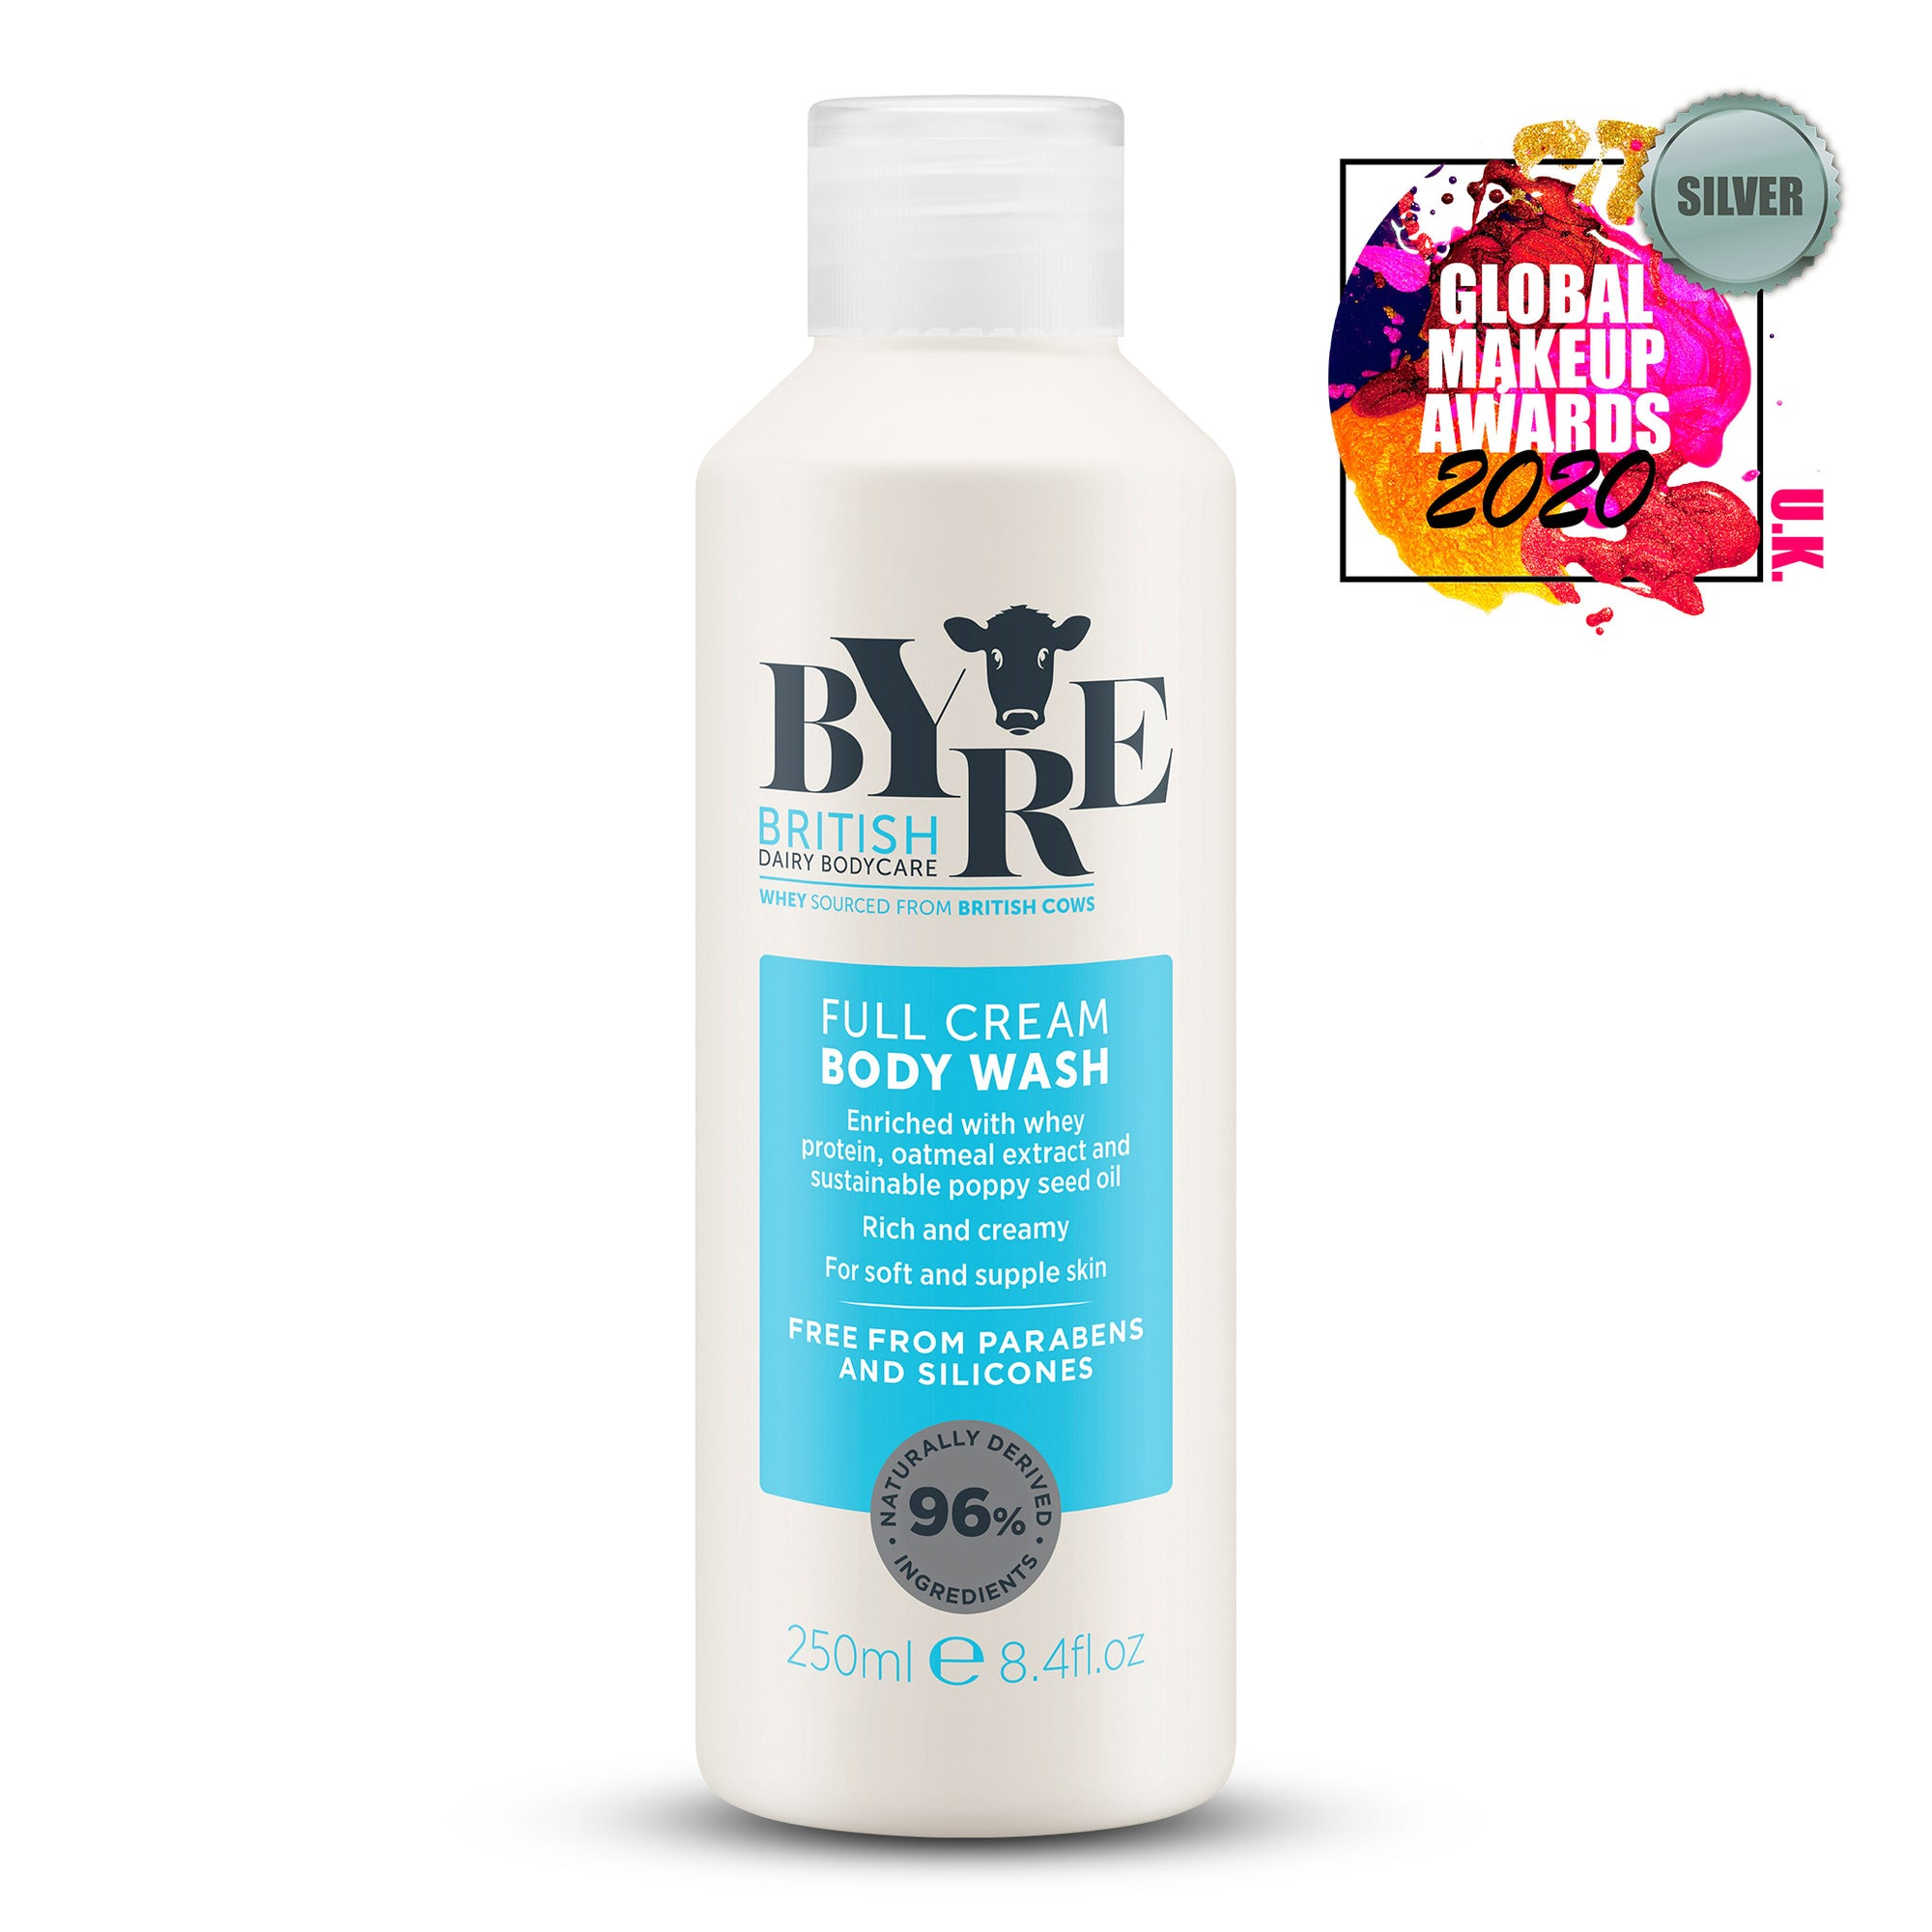 Byre Body Wash Full Cream (250ml / 8.4fl.oz) Silver winner at the Global Makeup Awards 2020